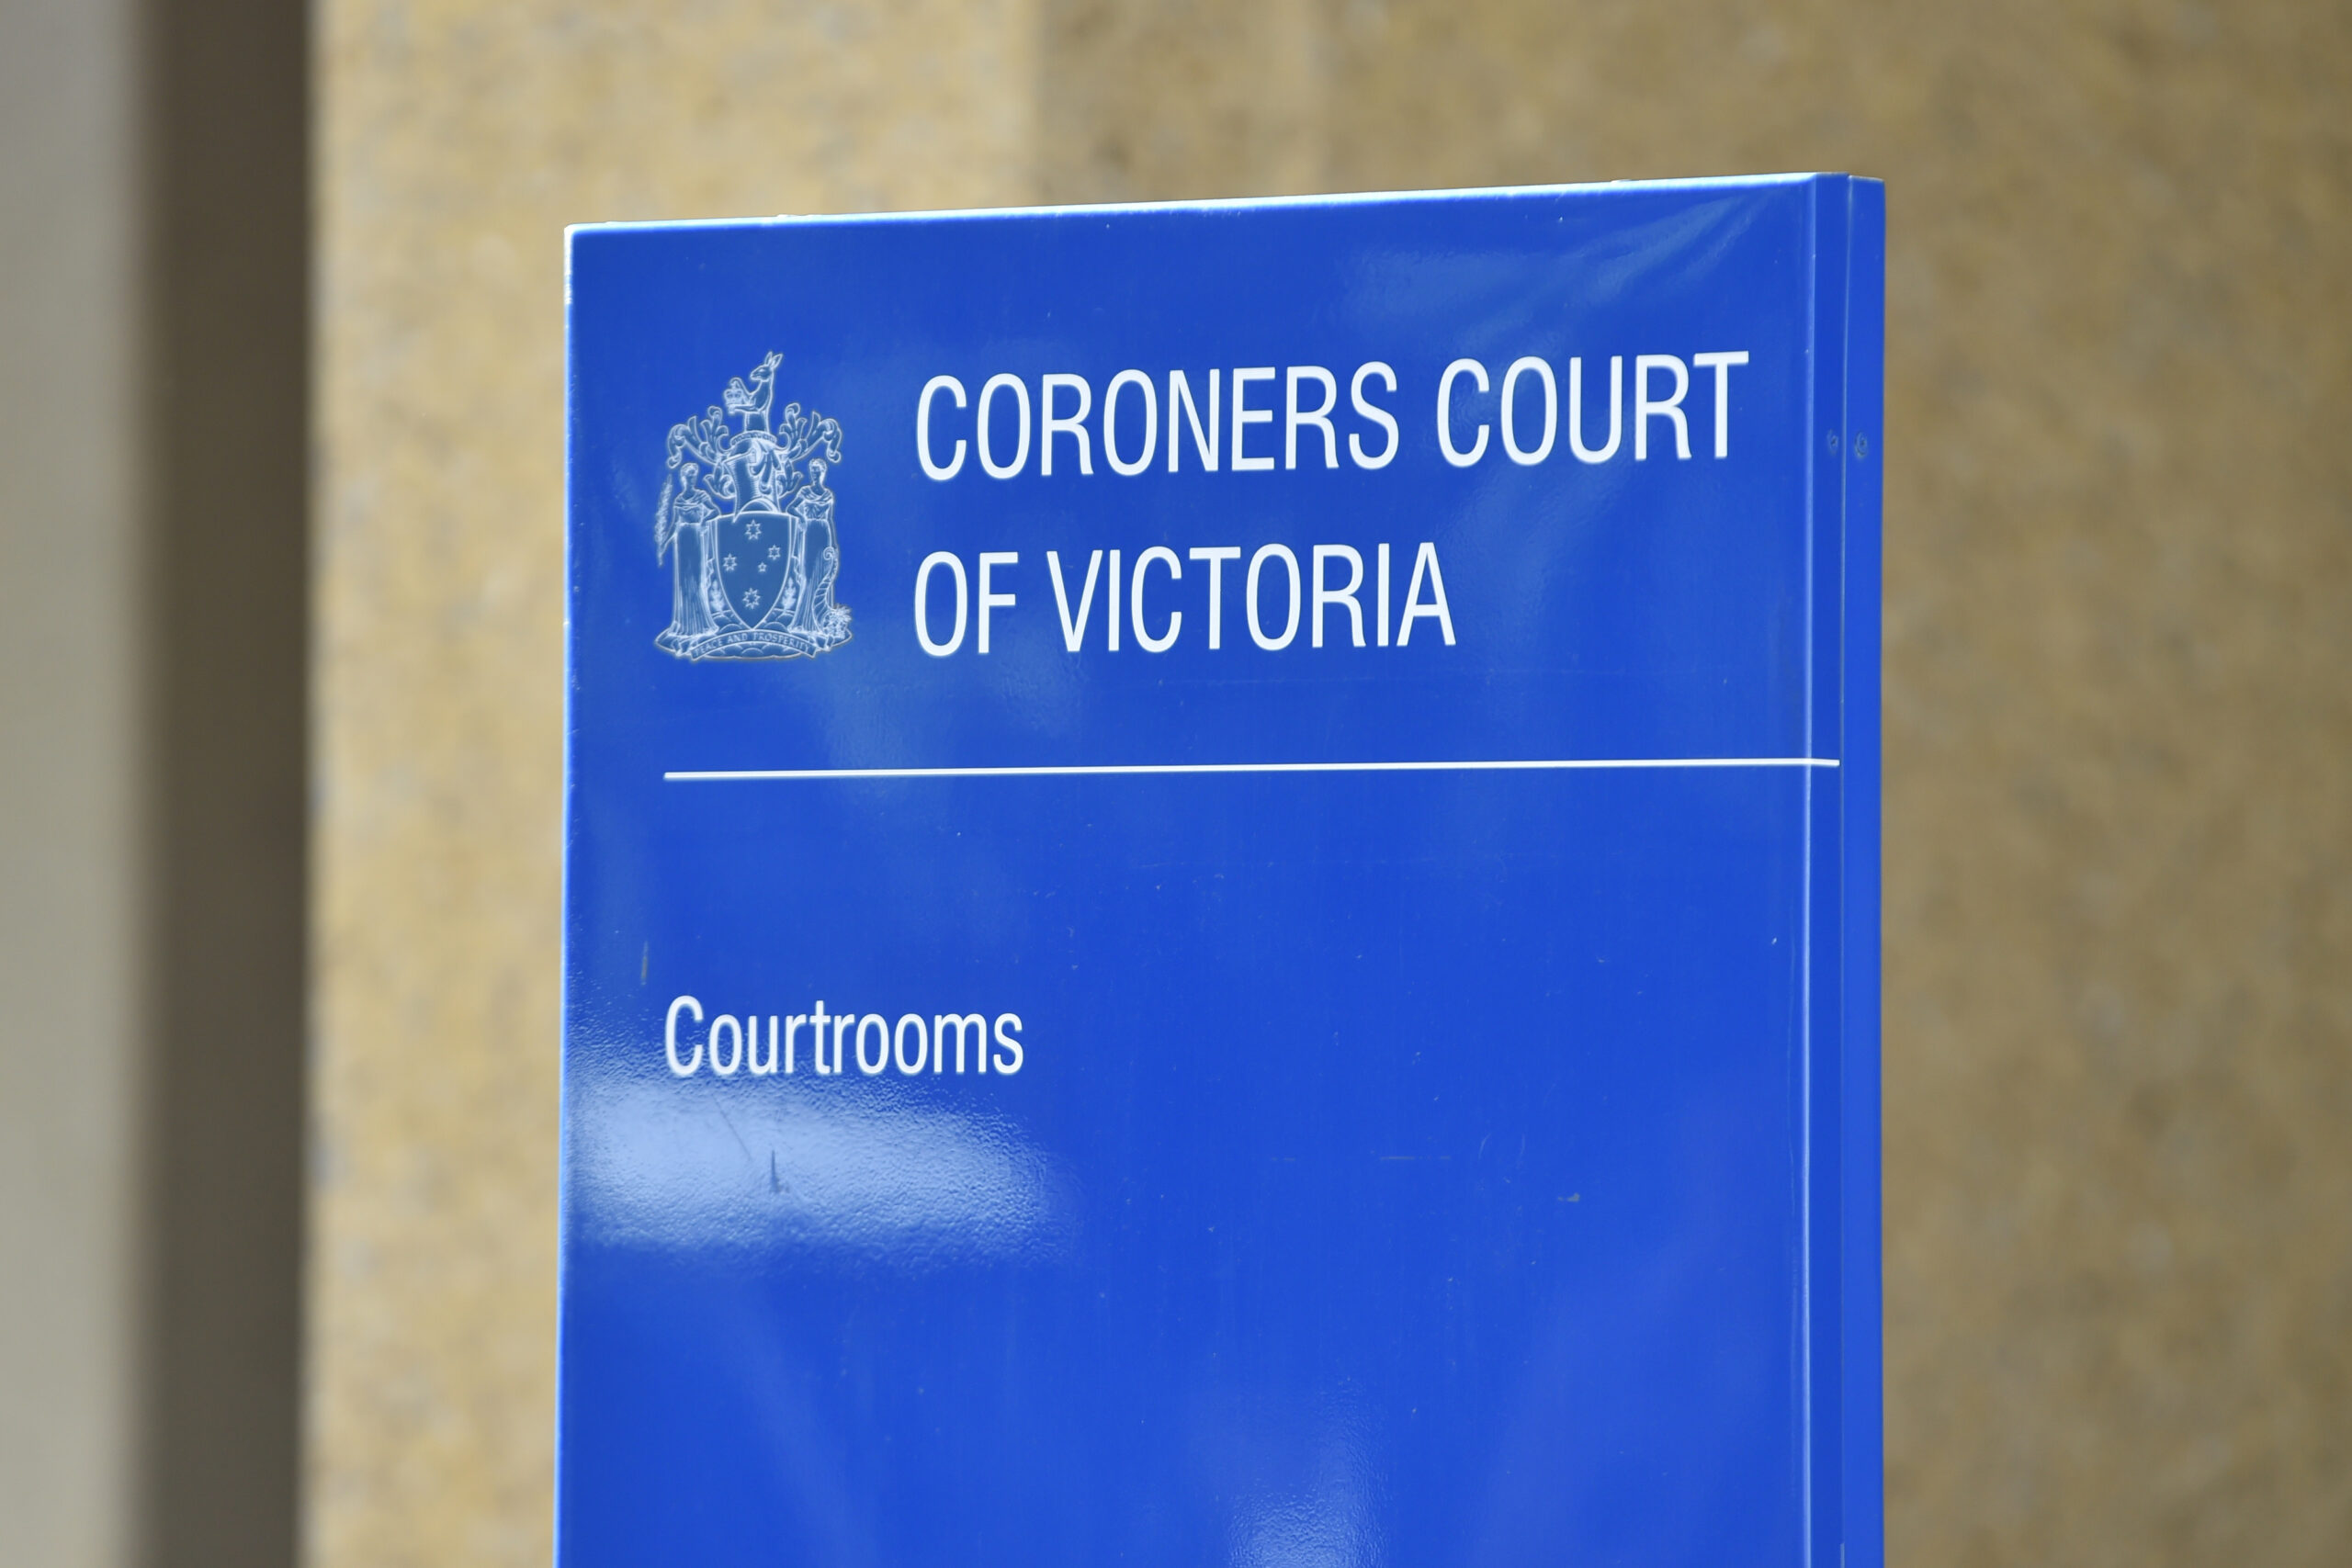 Victoria Woman Killed By Stepfather, Court Told